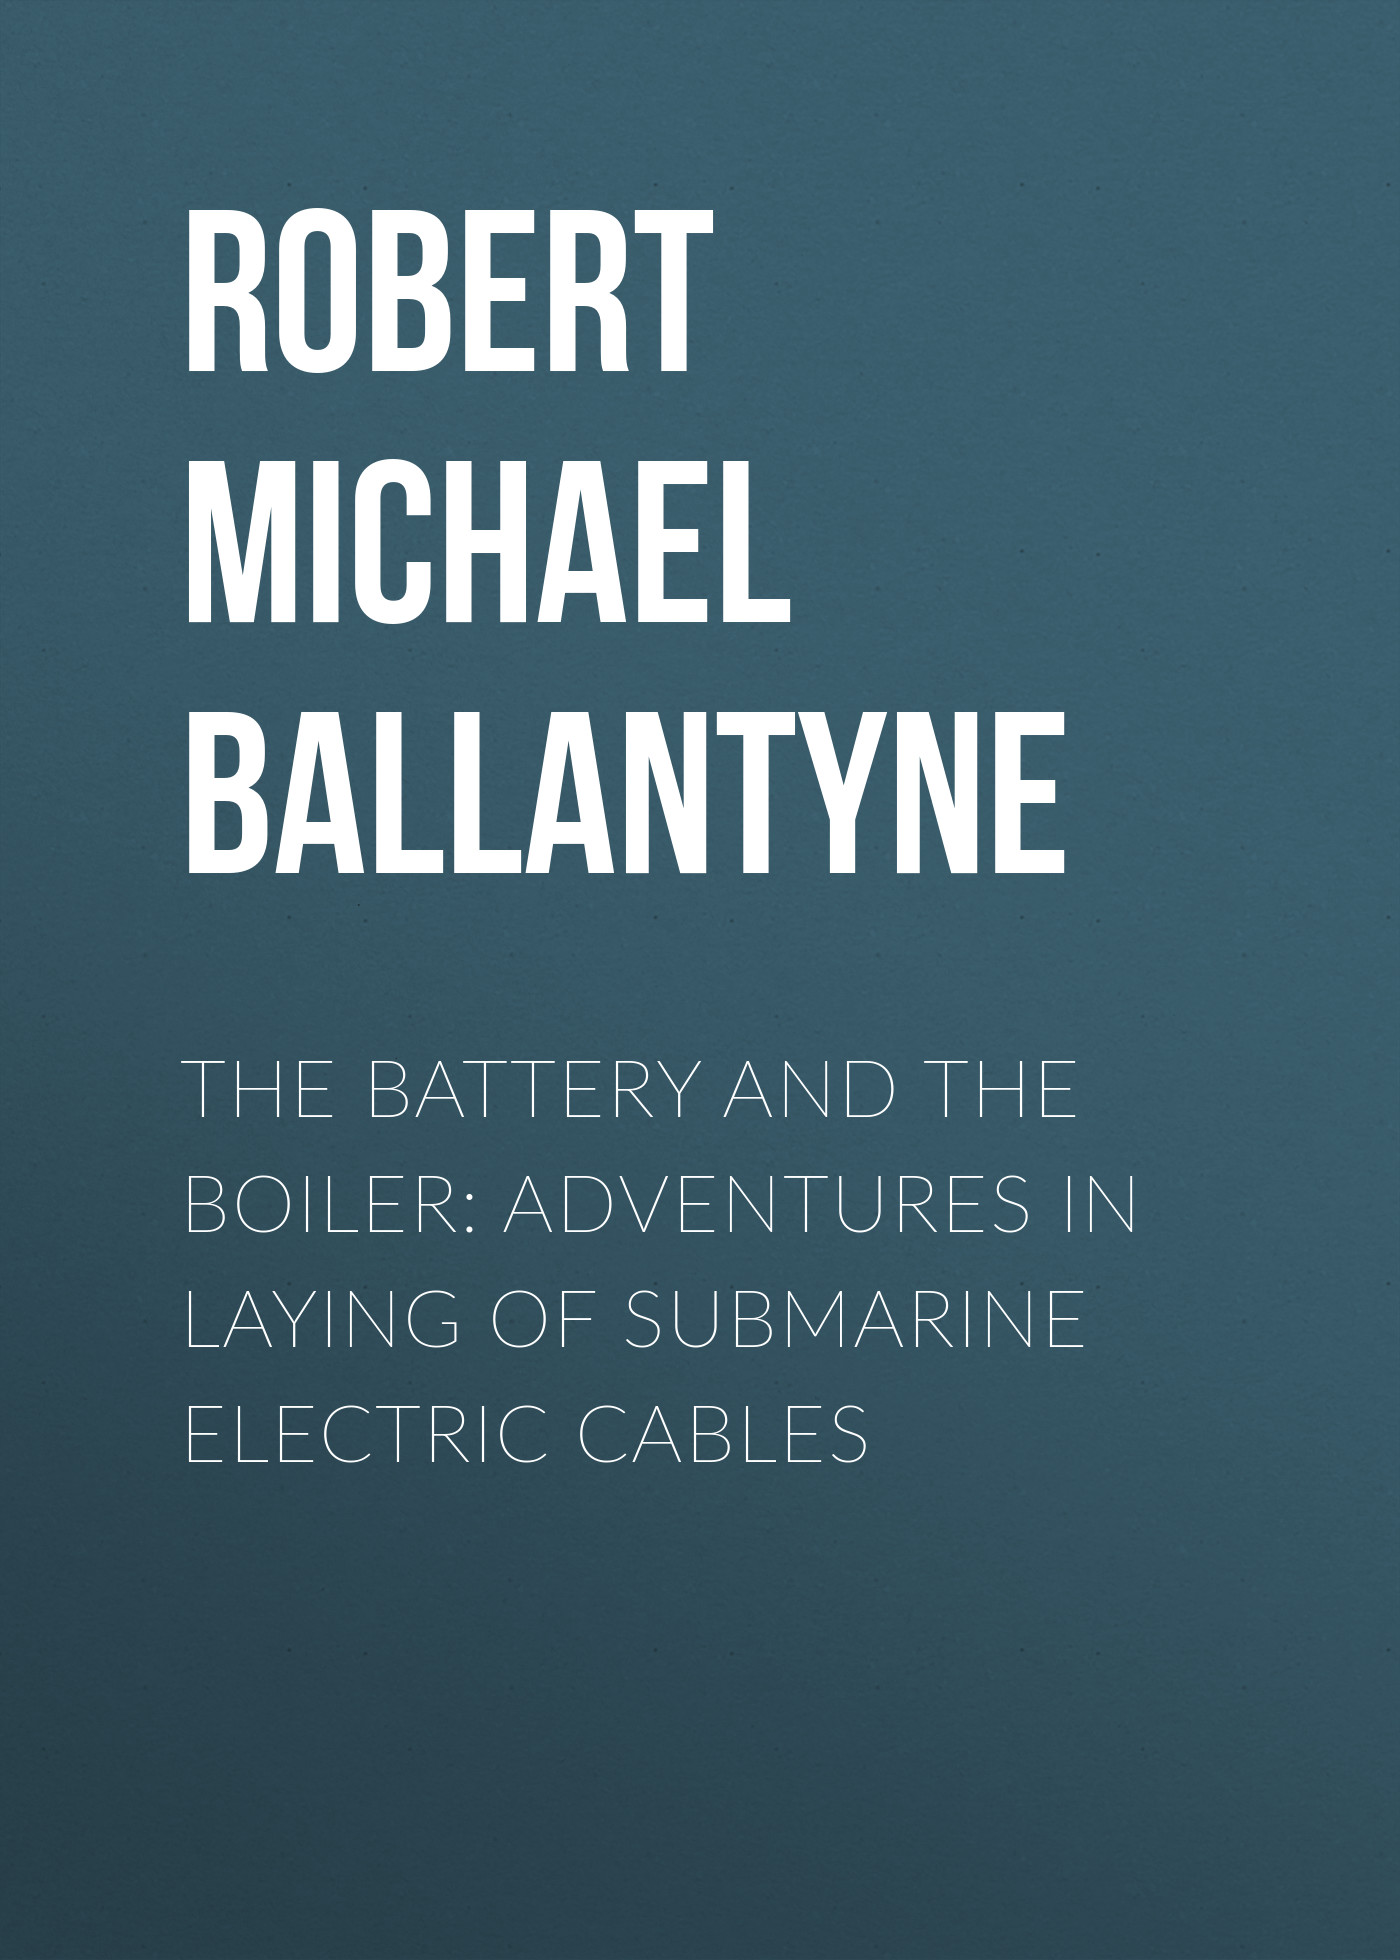 The Battery and the Boiler: Adventures in Laying of Submarine Electric Cables